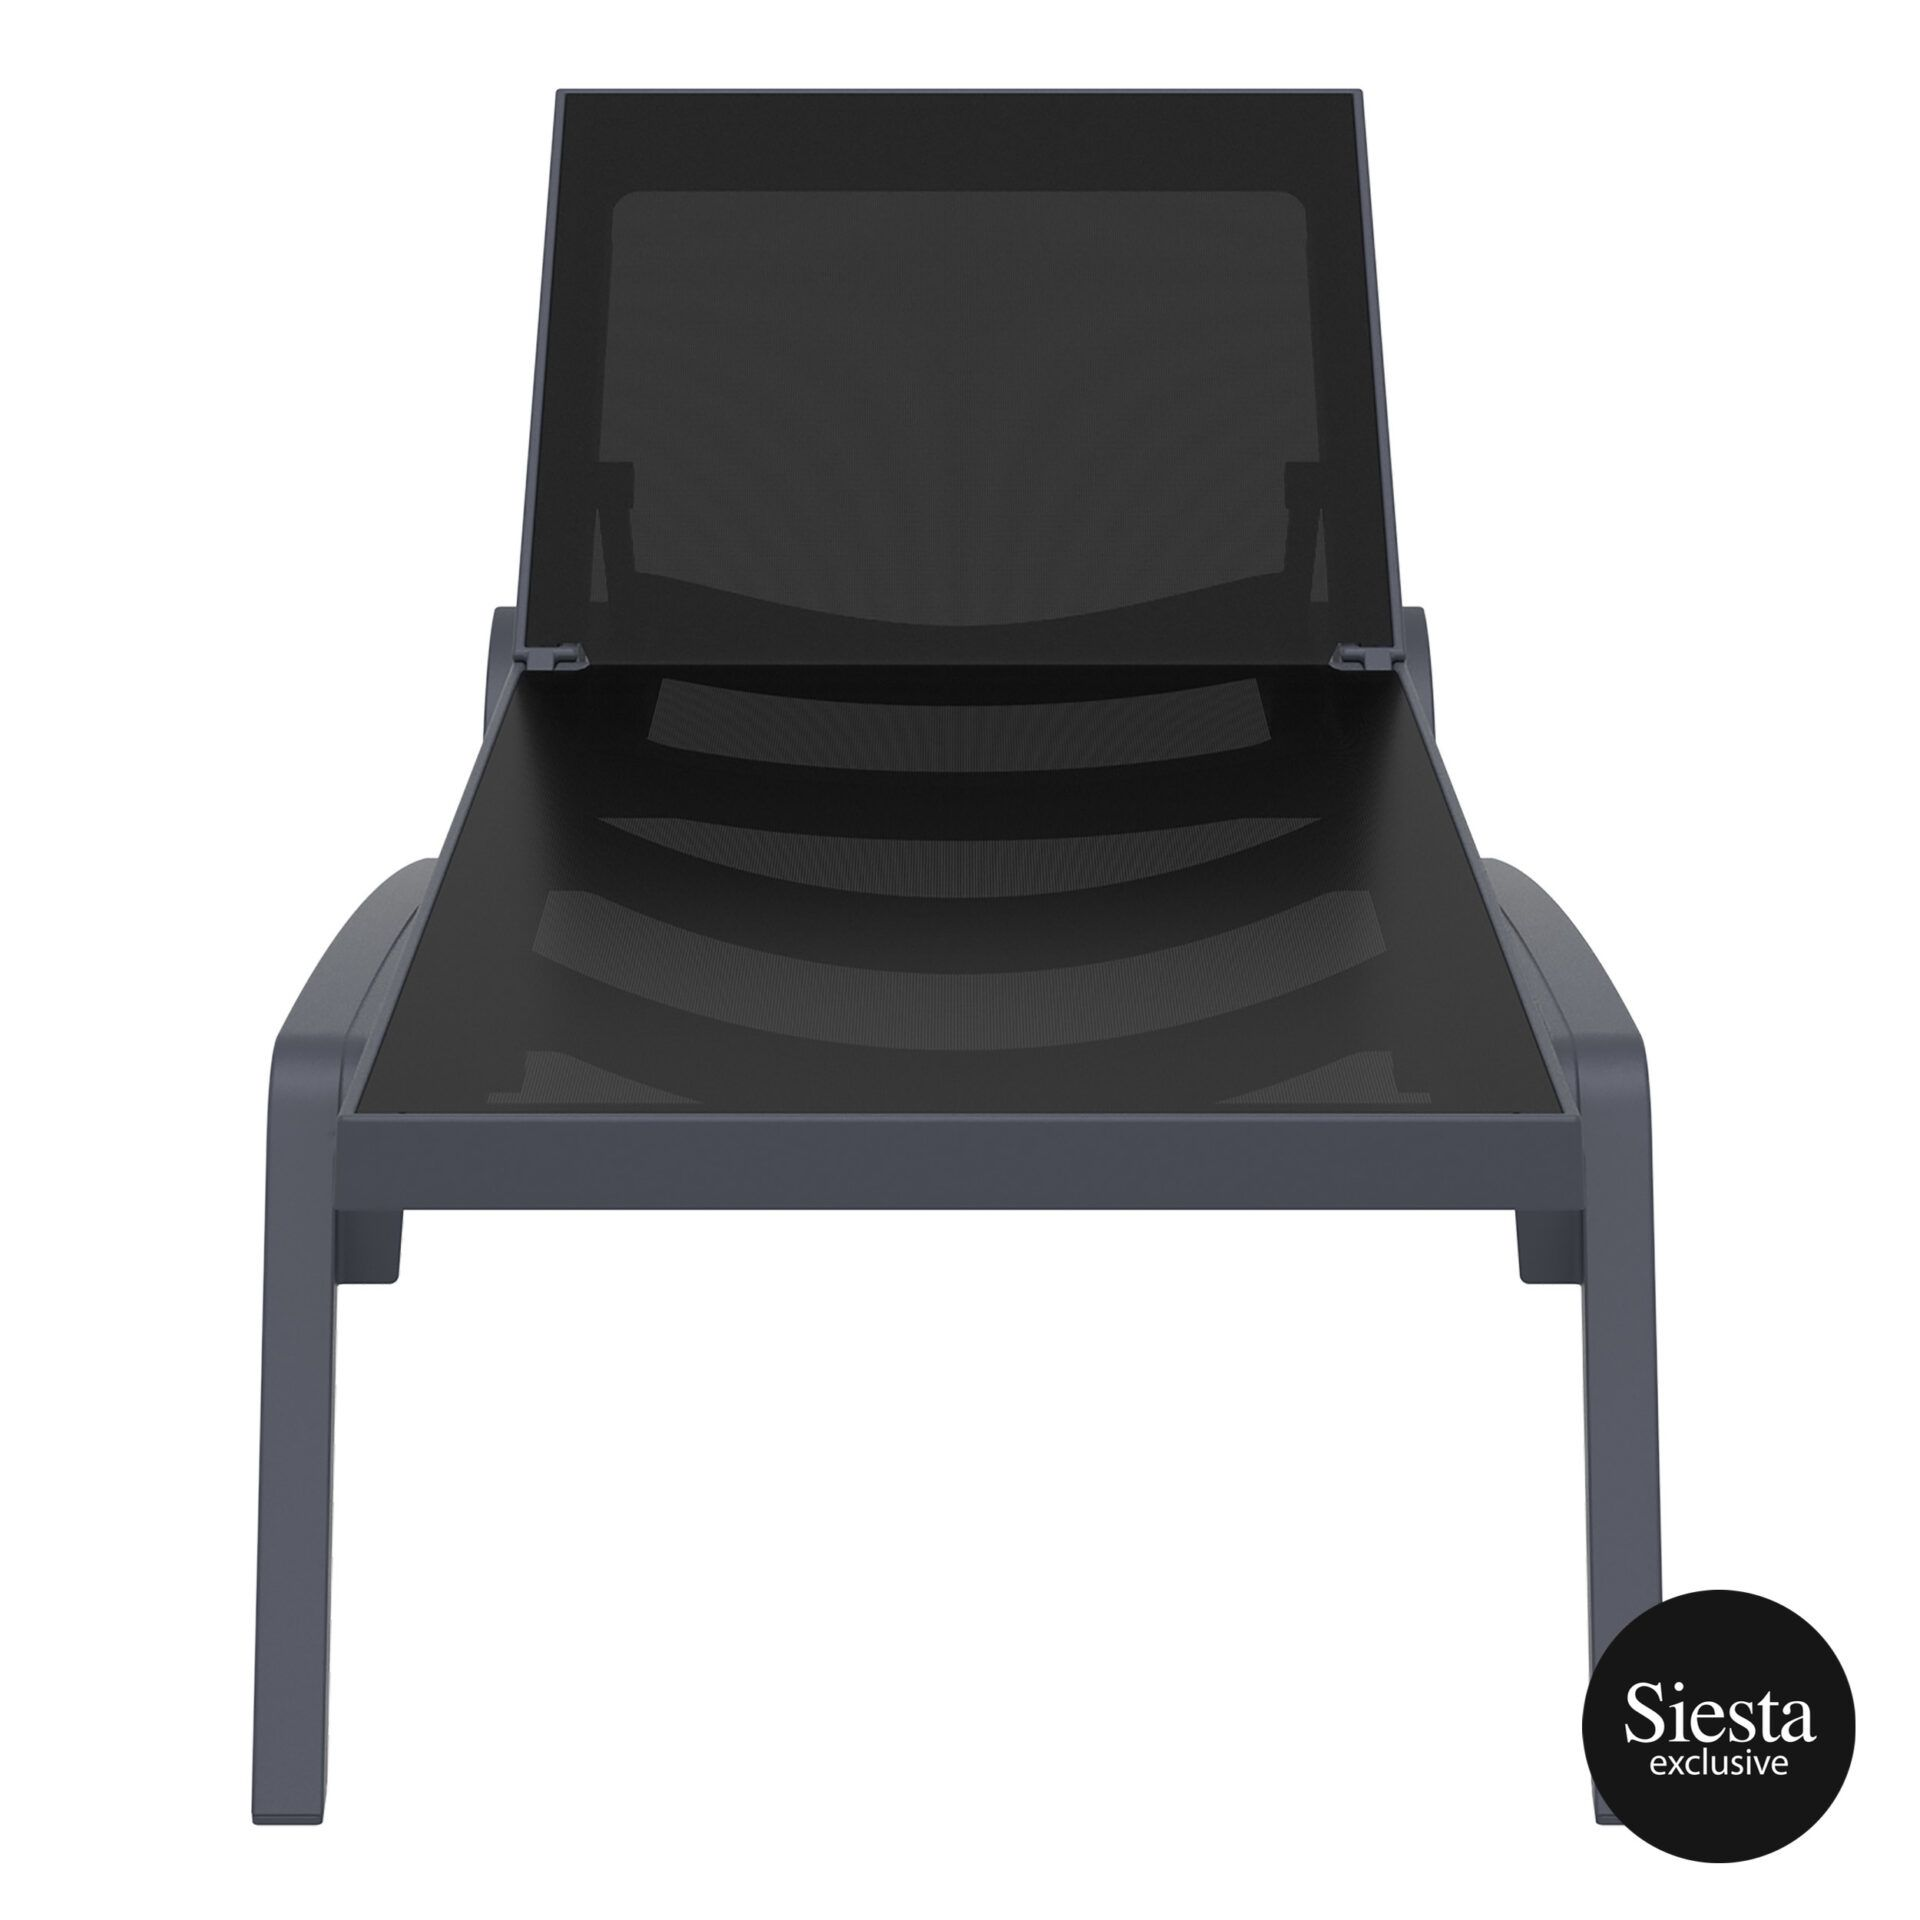 pool deck commercial pacific sunlounger darkgrey black front 1